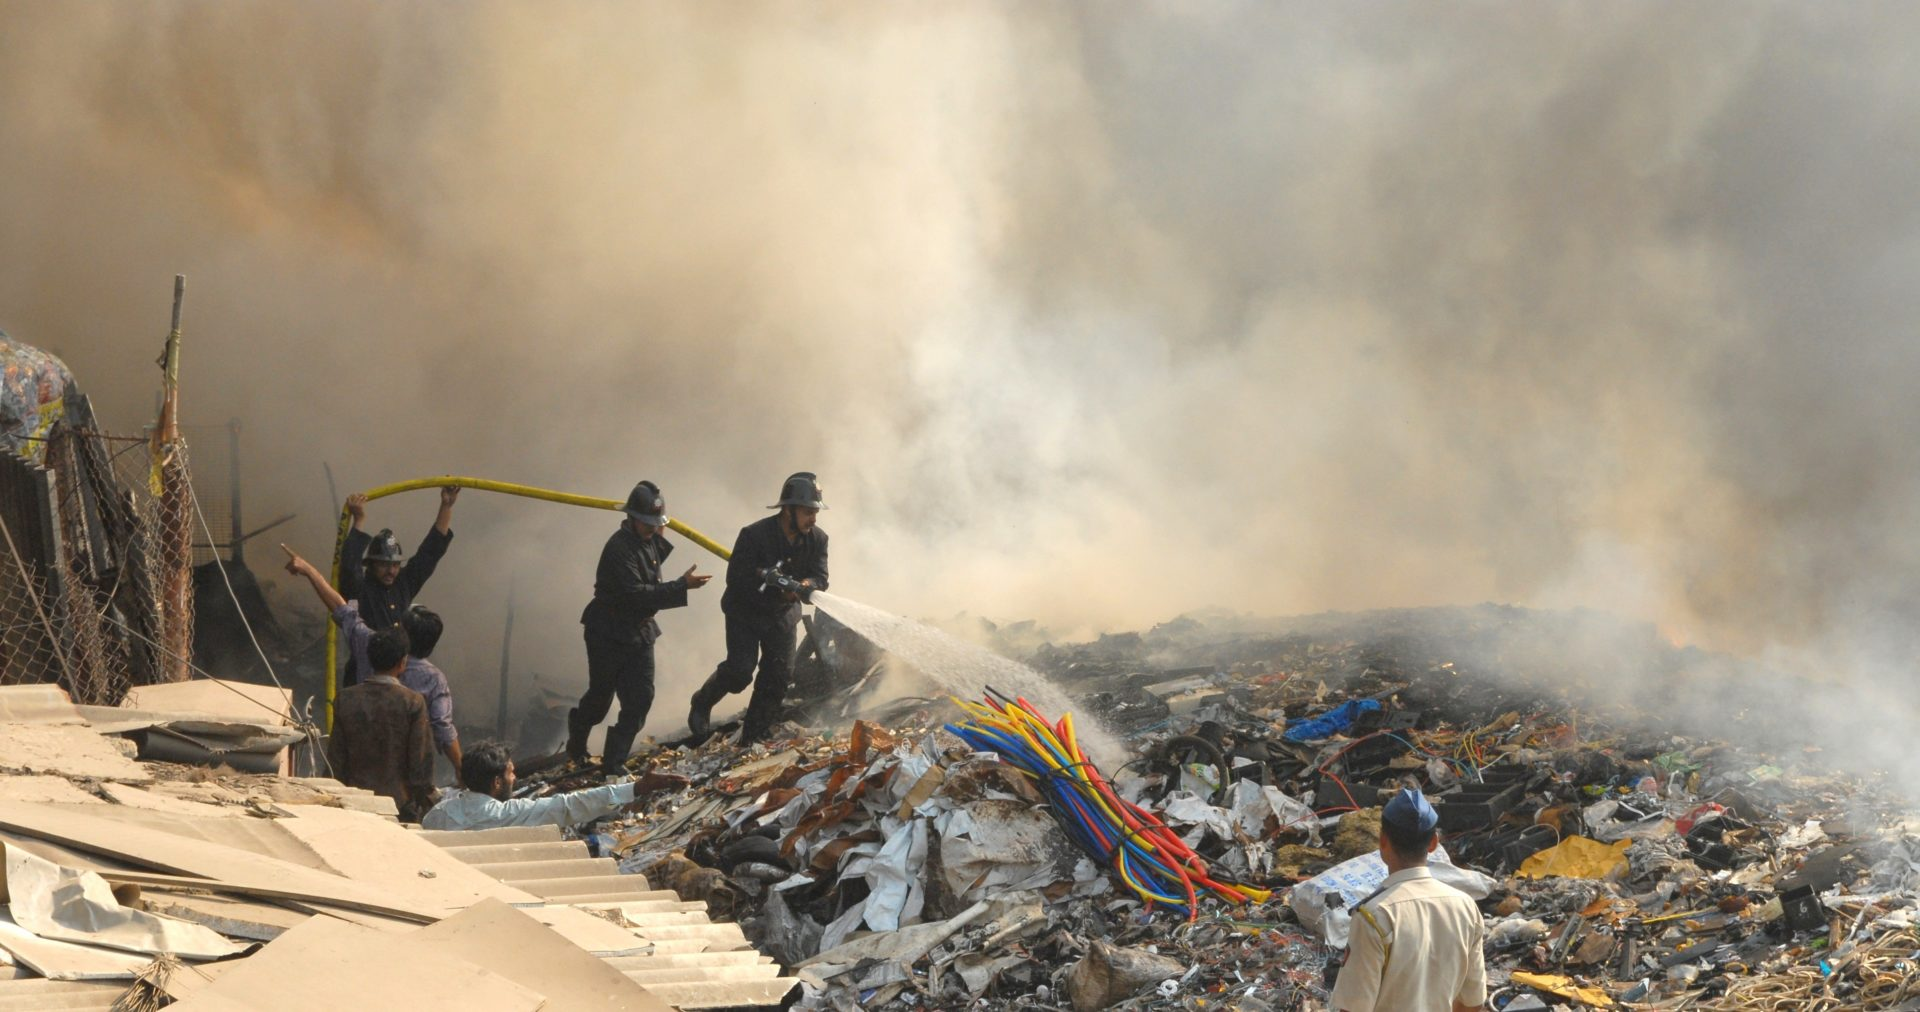 Firemen spray water on a large pile of smoldering rubble. Smoke fills the sky behind them.